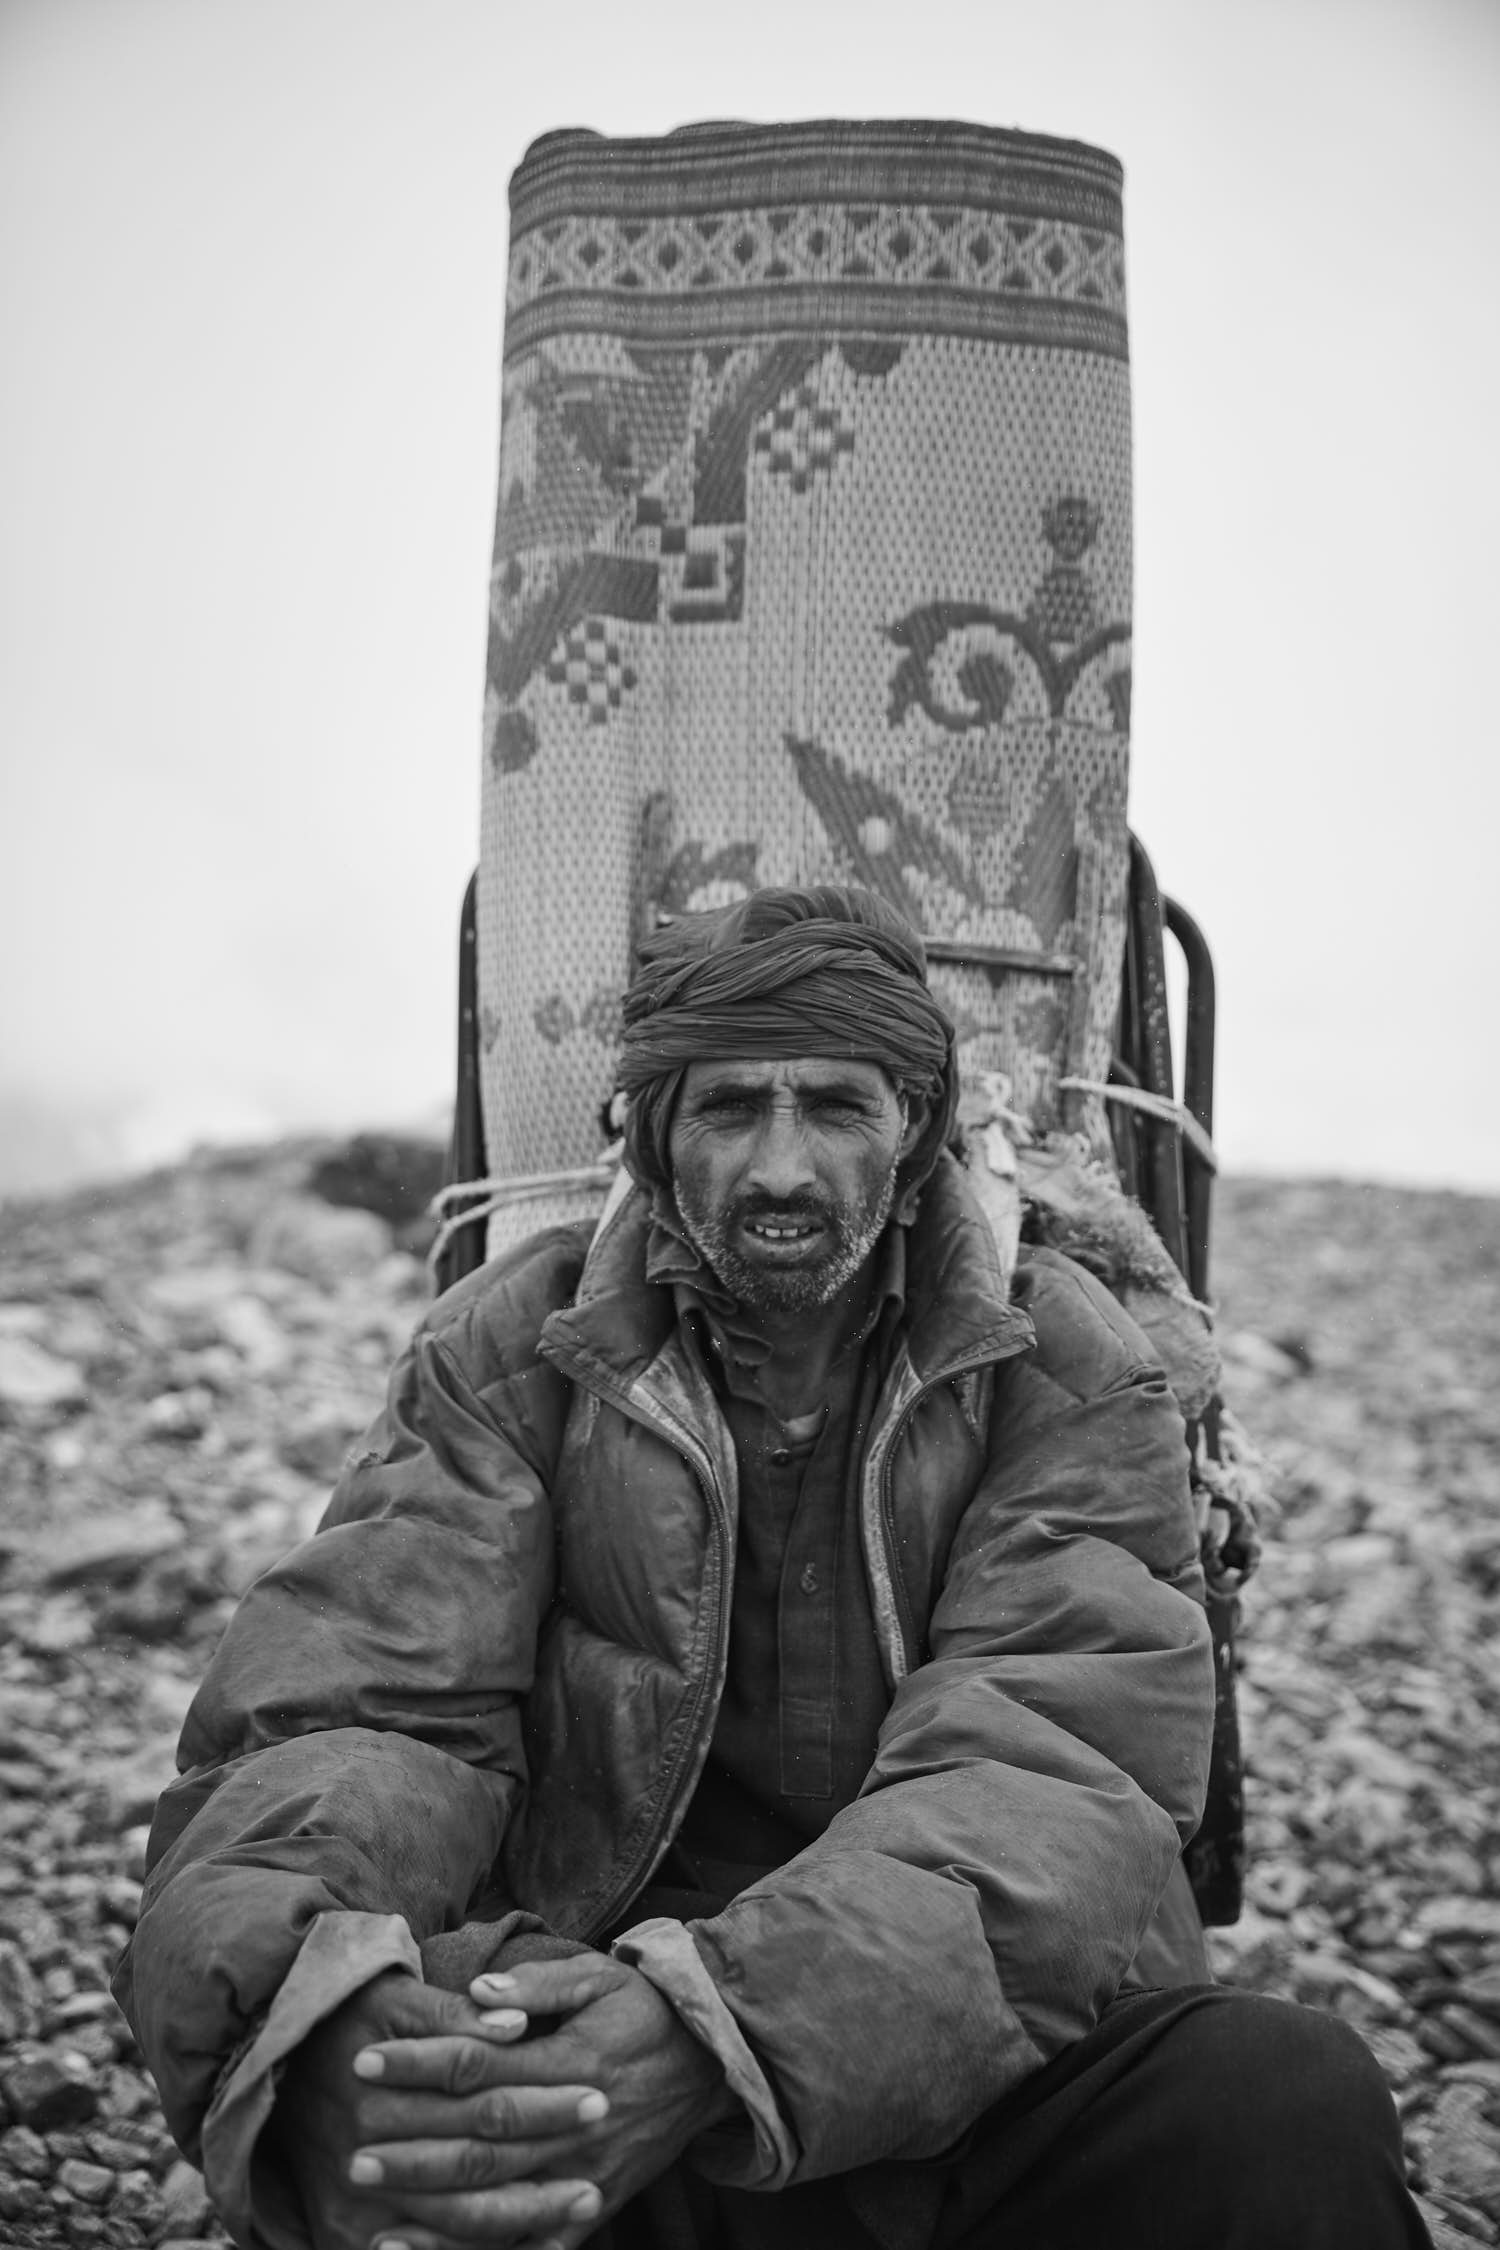 Portrait of a Balti porter carrying a big carpet. Black and white photography.